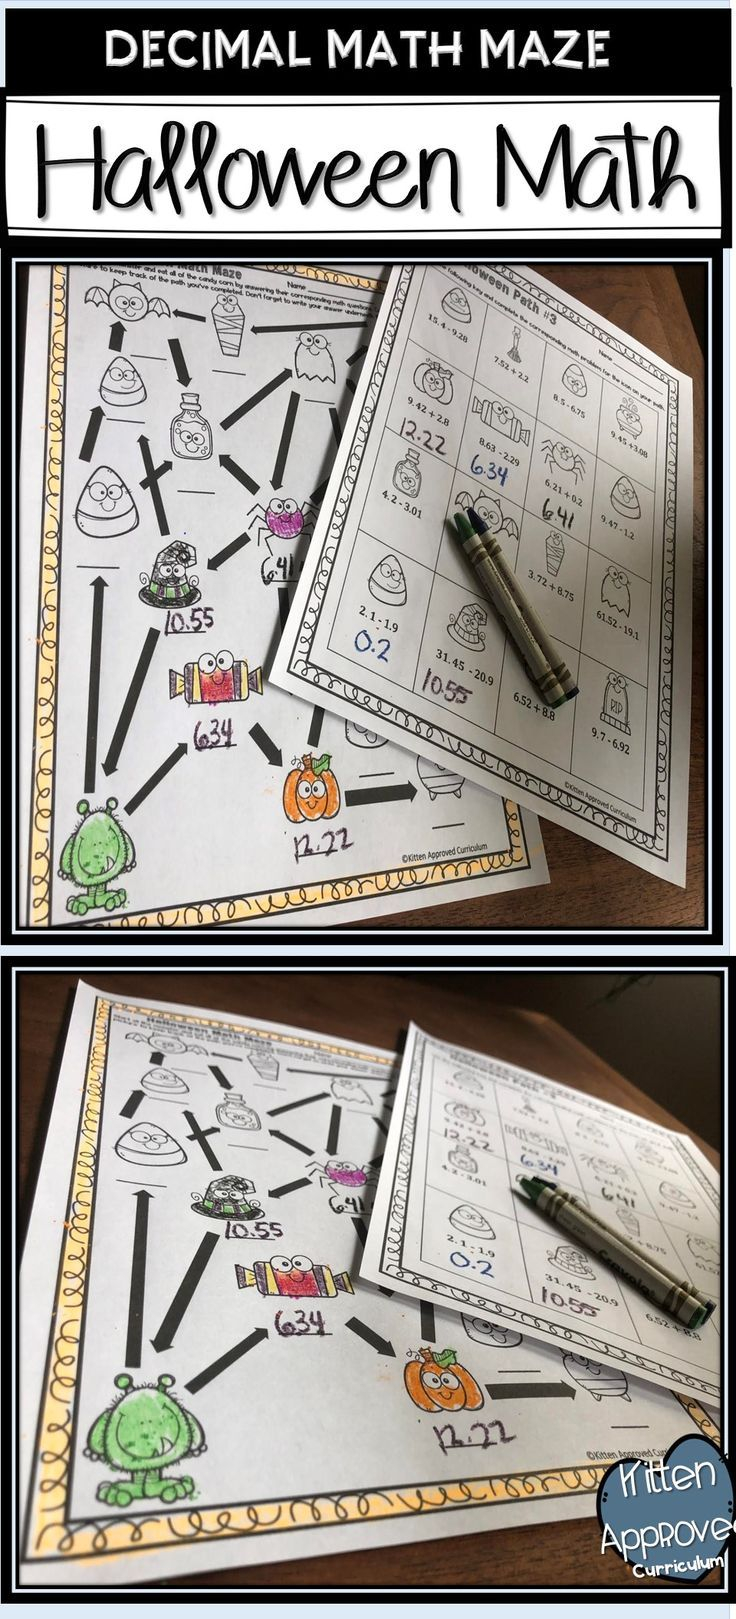 500+ Halloween Activities For 4Th, 5Th, And 6Th Grade Ideas